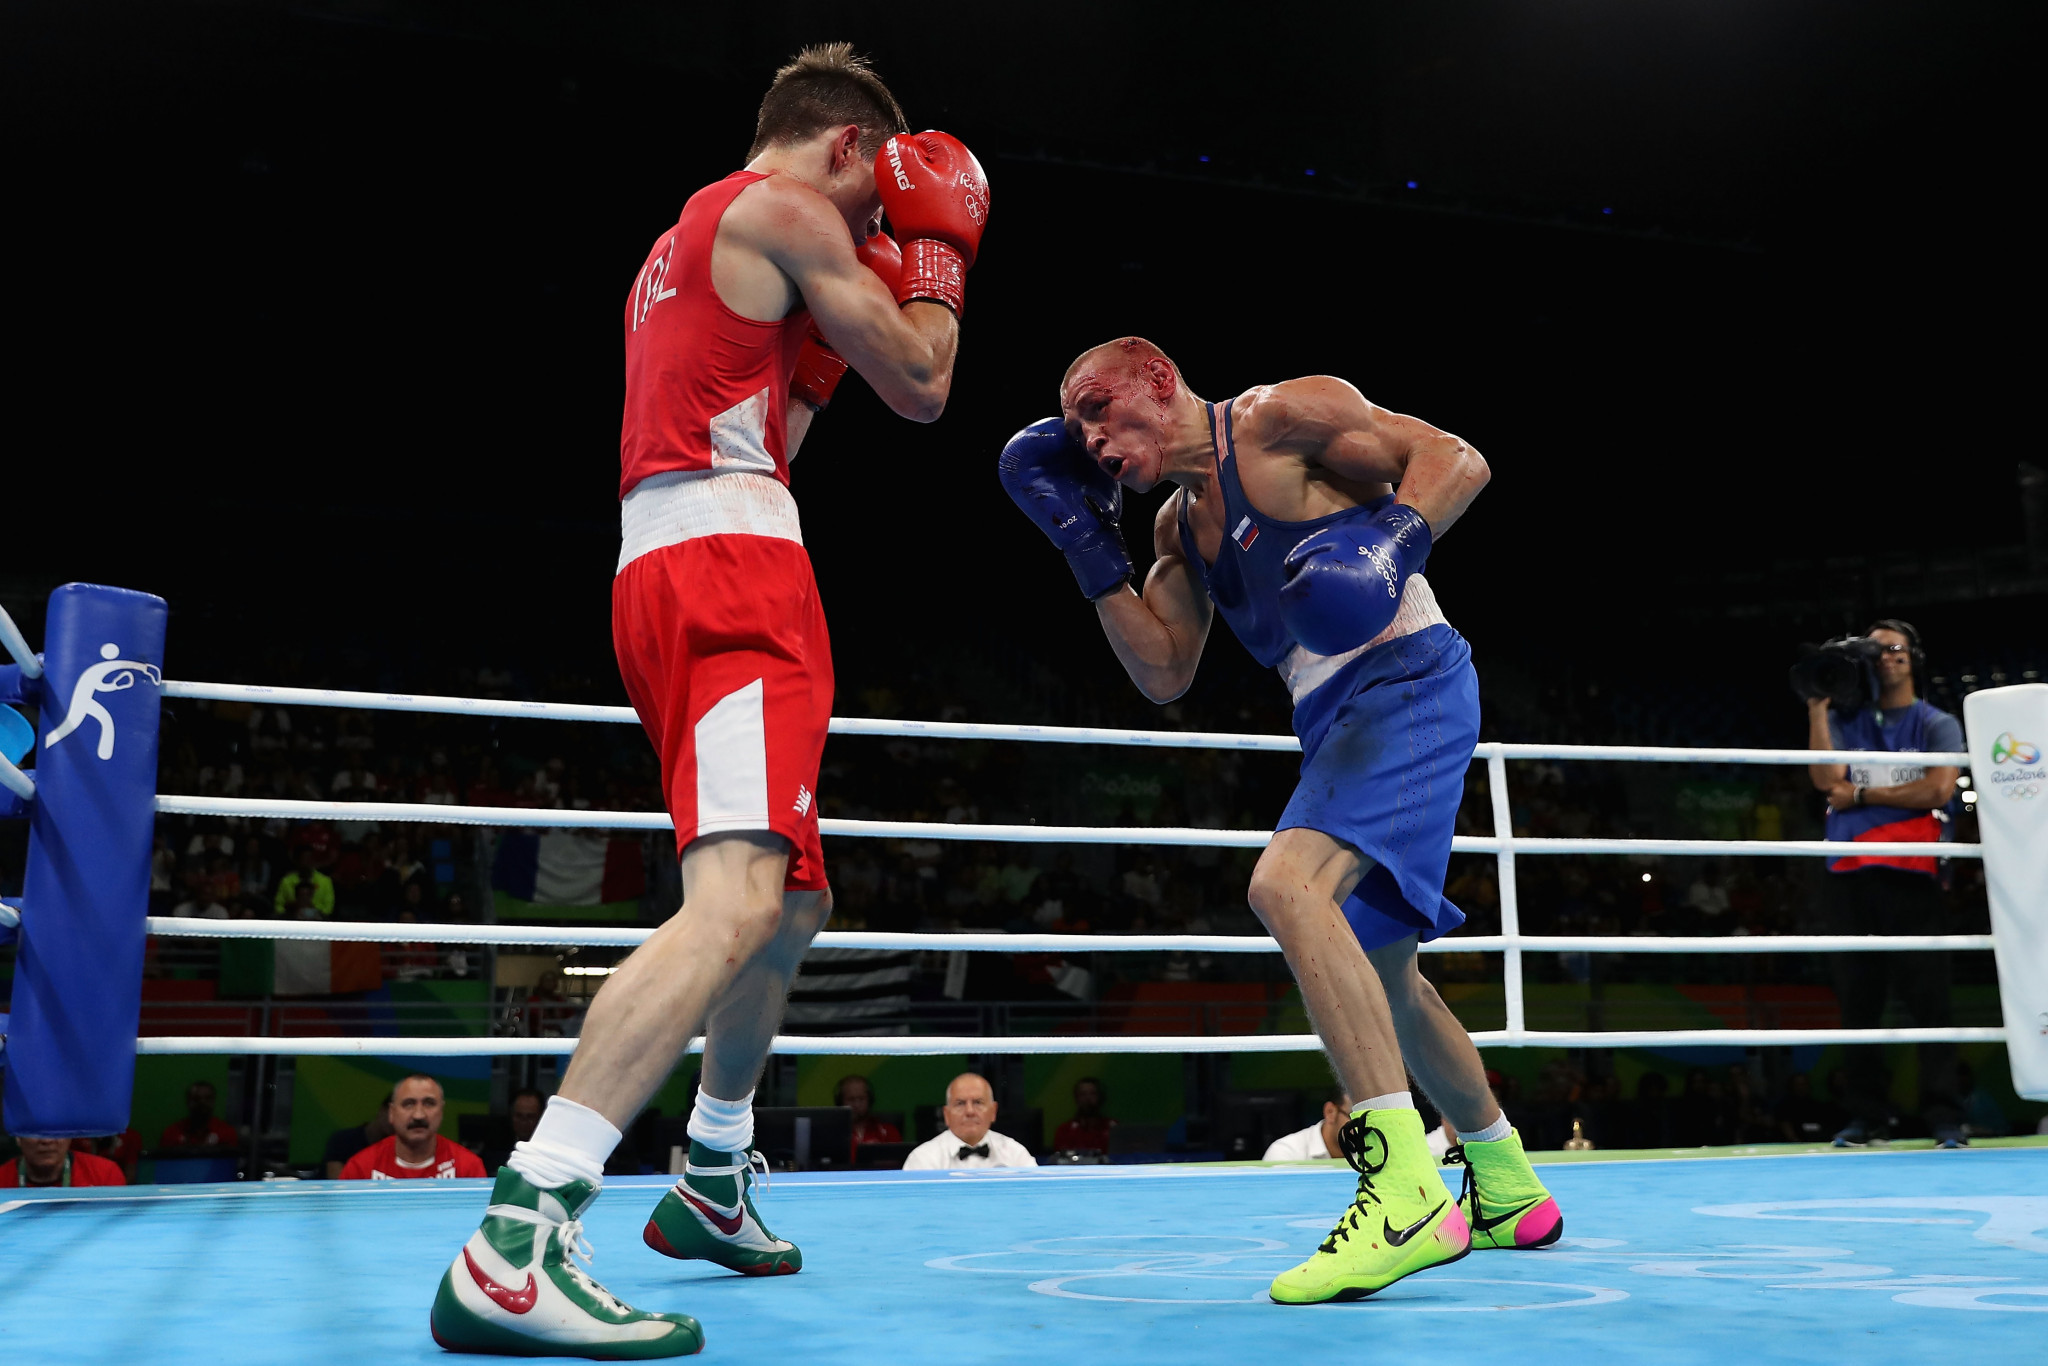 The controversial bout controversial bout between Ireland's Michael Conlan and Russia's Vladimir Nikitin at Rio 2016 is sure at the centre of Richard McLaren's investigation ©Getty Images